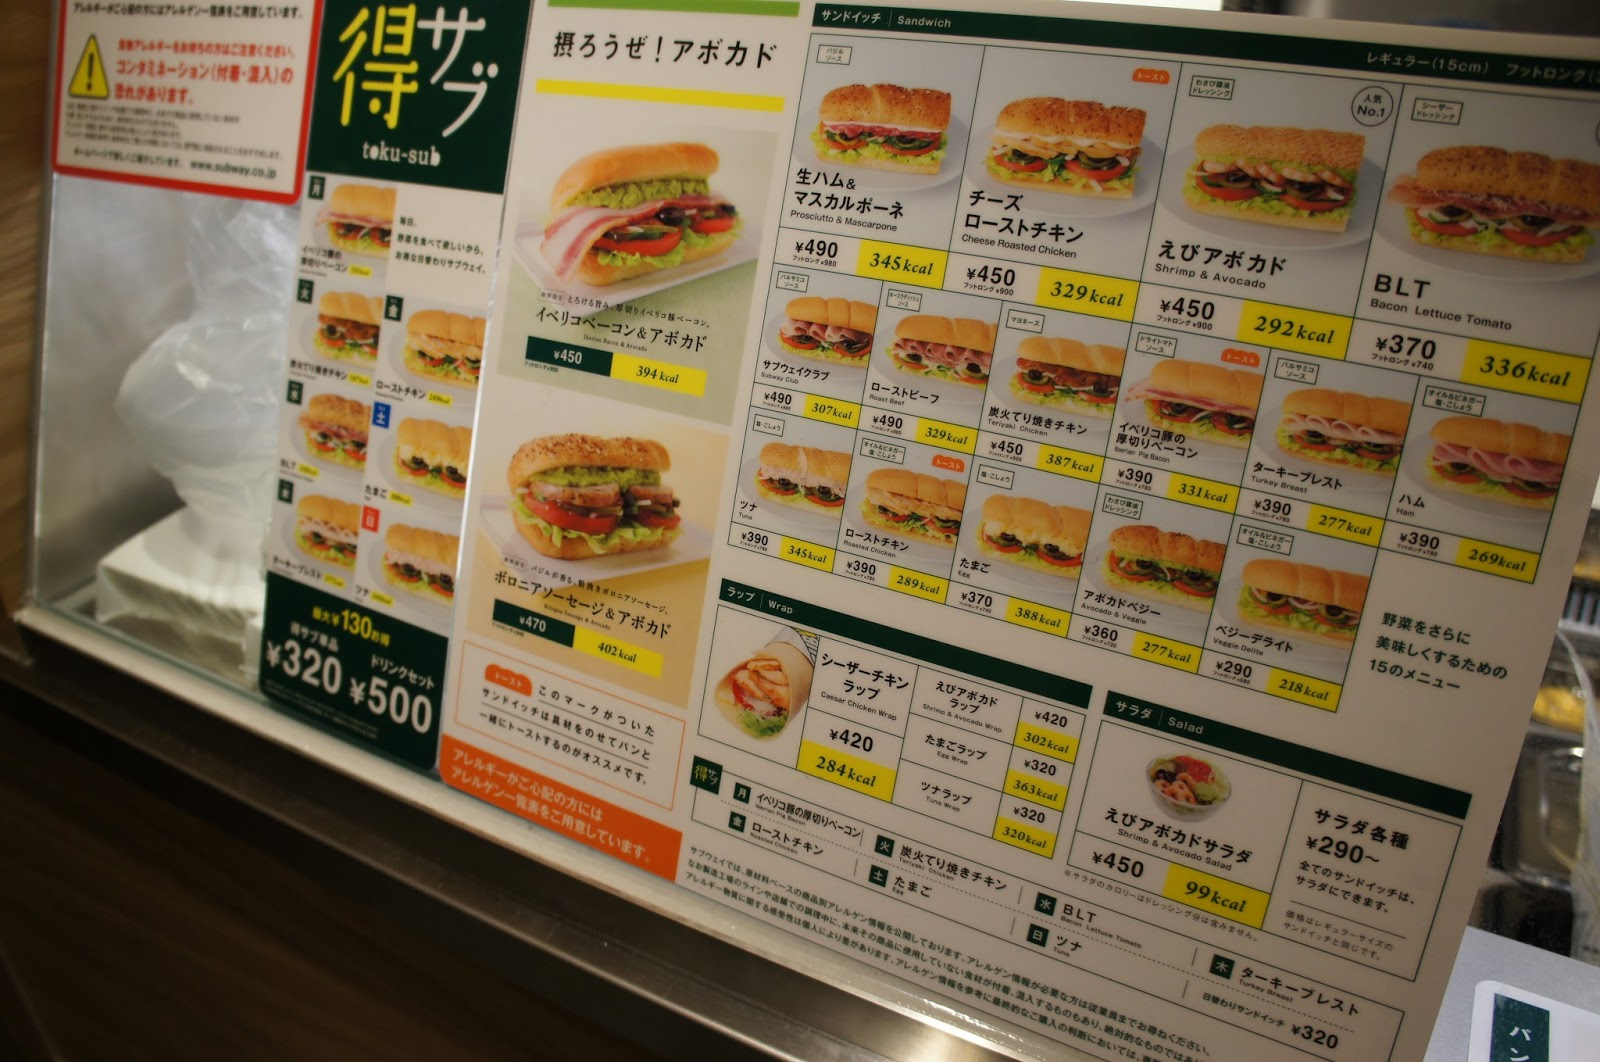 subway restaurant marketing in japan Company profile & key executives for subway restaurants (5776z:-) including description, corporate address, management team and contact info.